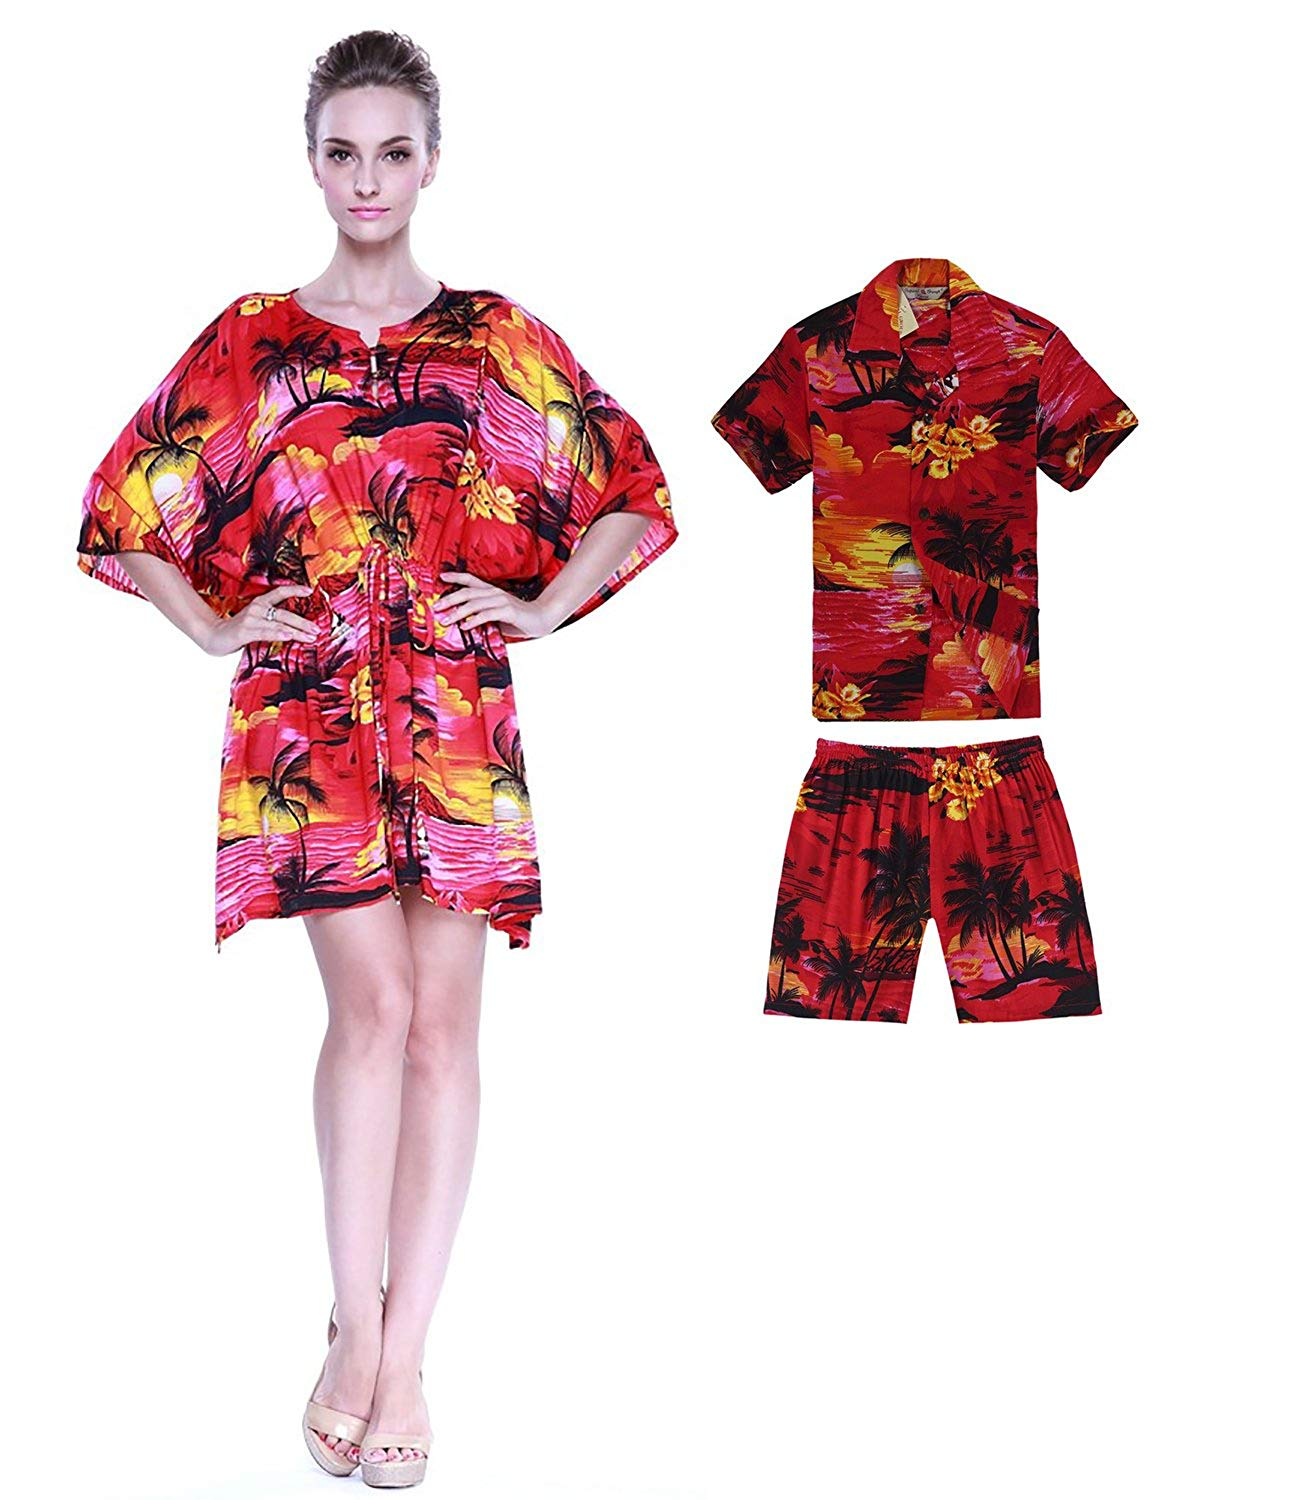 6af9fd899d25 Hawaii Hangover Matching Mother Son Hawaiian Luau Outfit Poncho Dress Shirt  In Sunset In 2 Colors